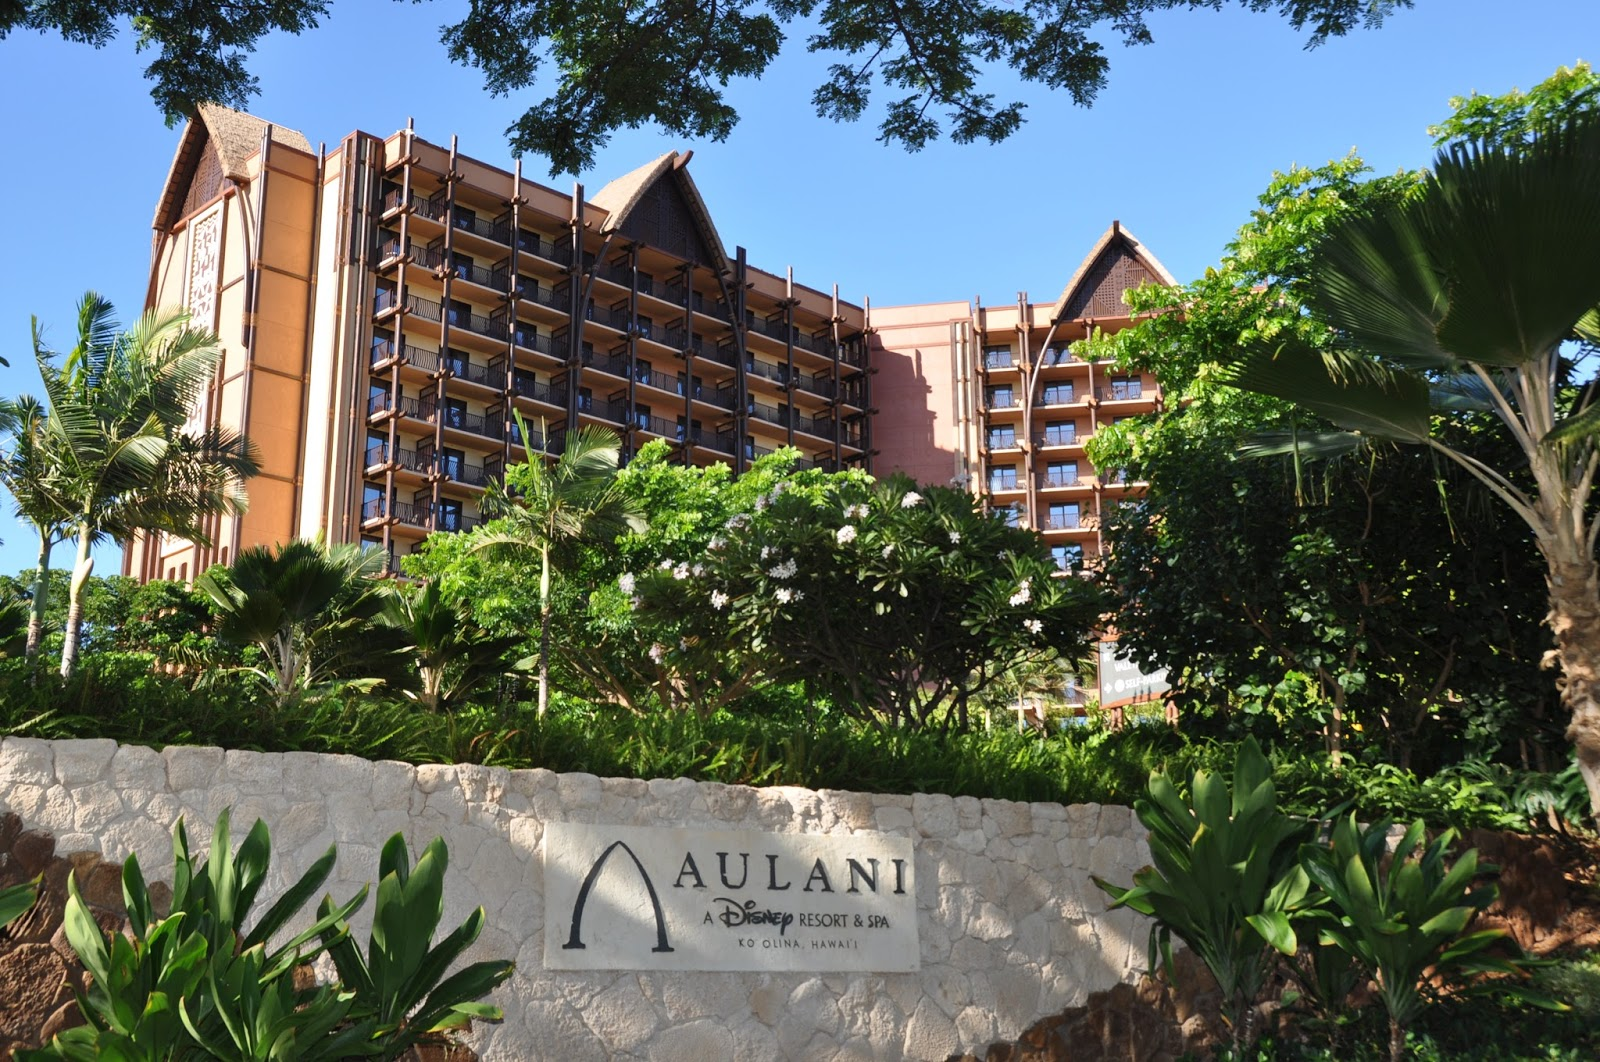 http://mommy-dreaming.blogspot.com/2014/05/vacation-planning-disneys-aulani-hotel.html